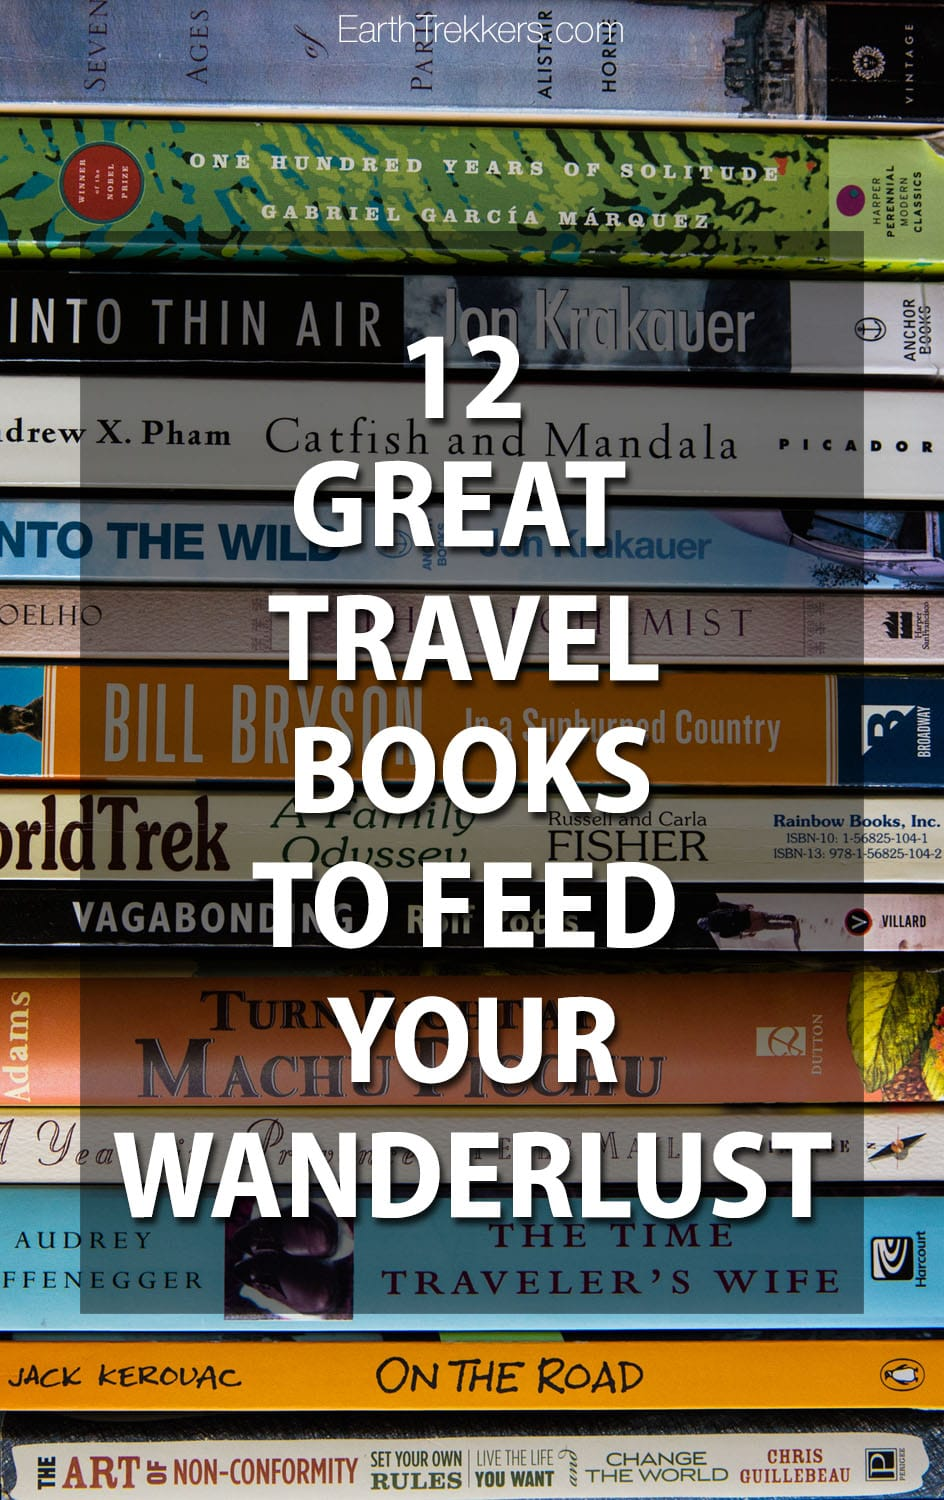 Best travel books to feed your wanderlust